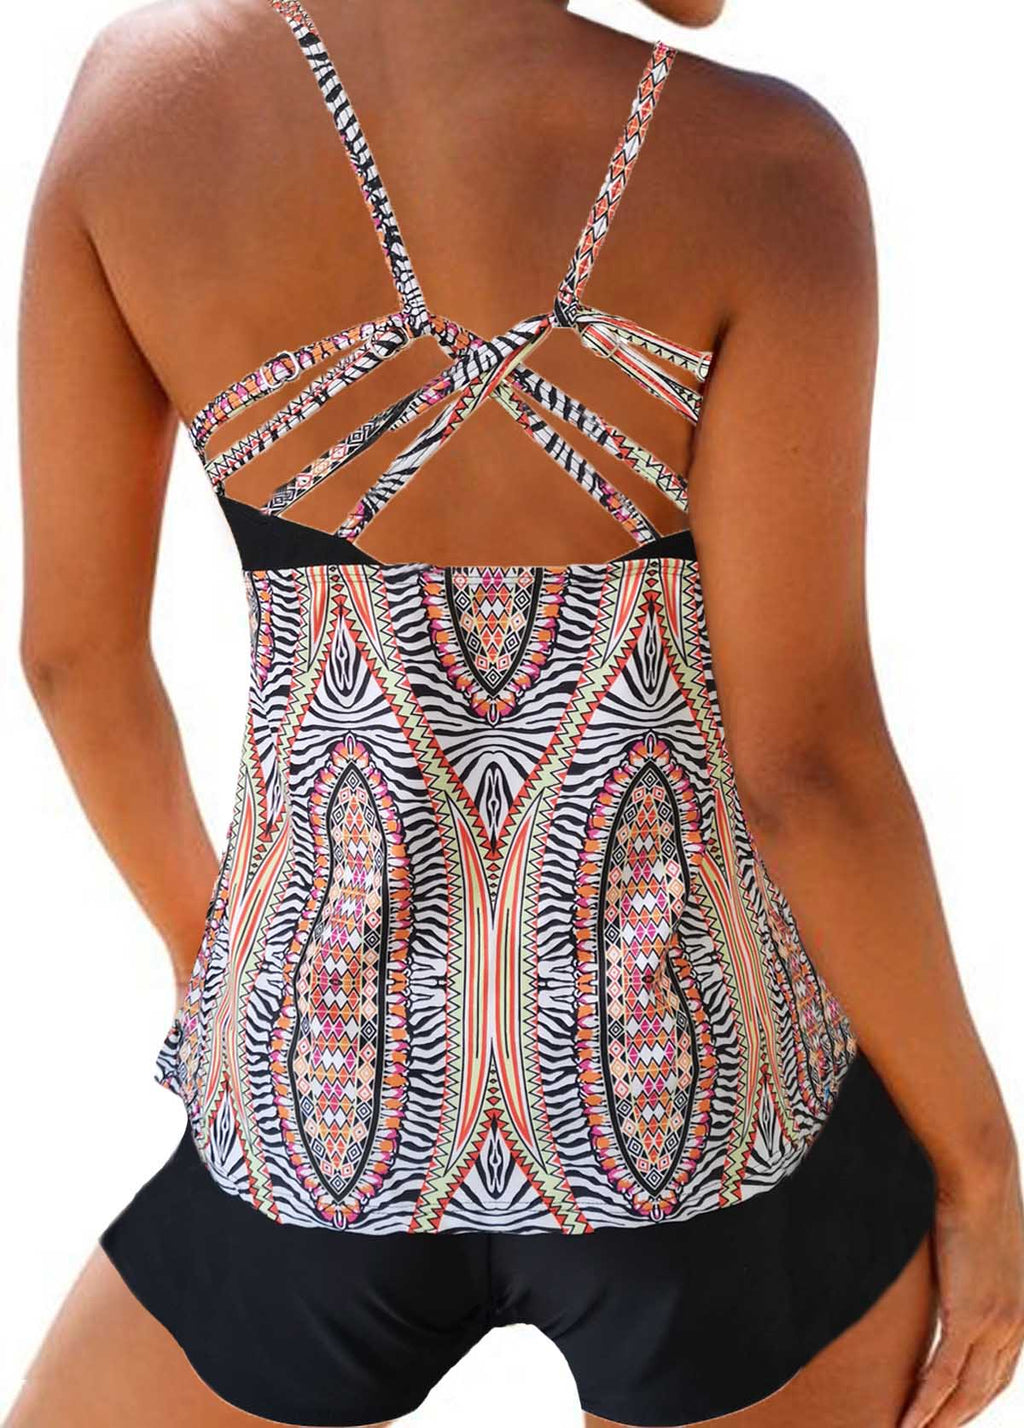 Strappy Back Printed Tankini Top and Shorts - fashionyanclothes